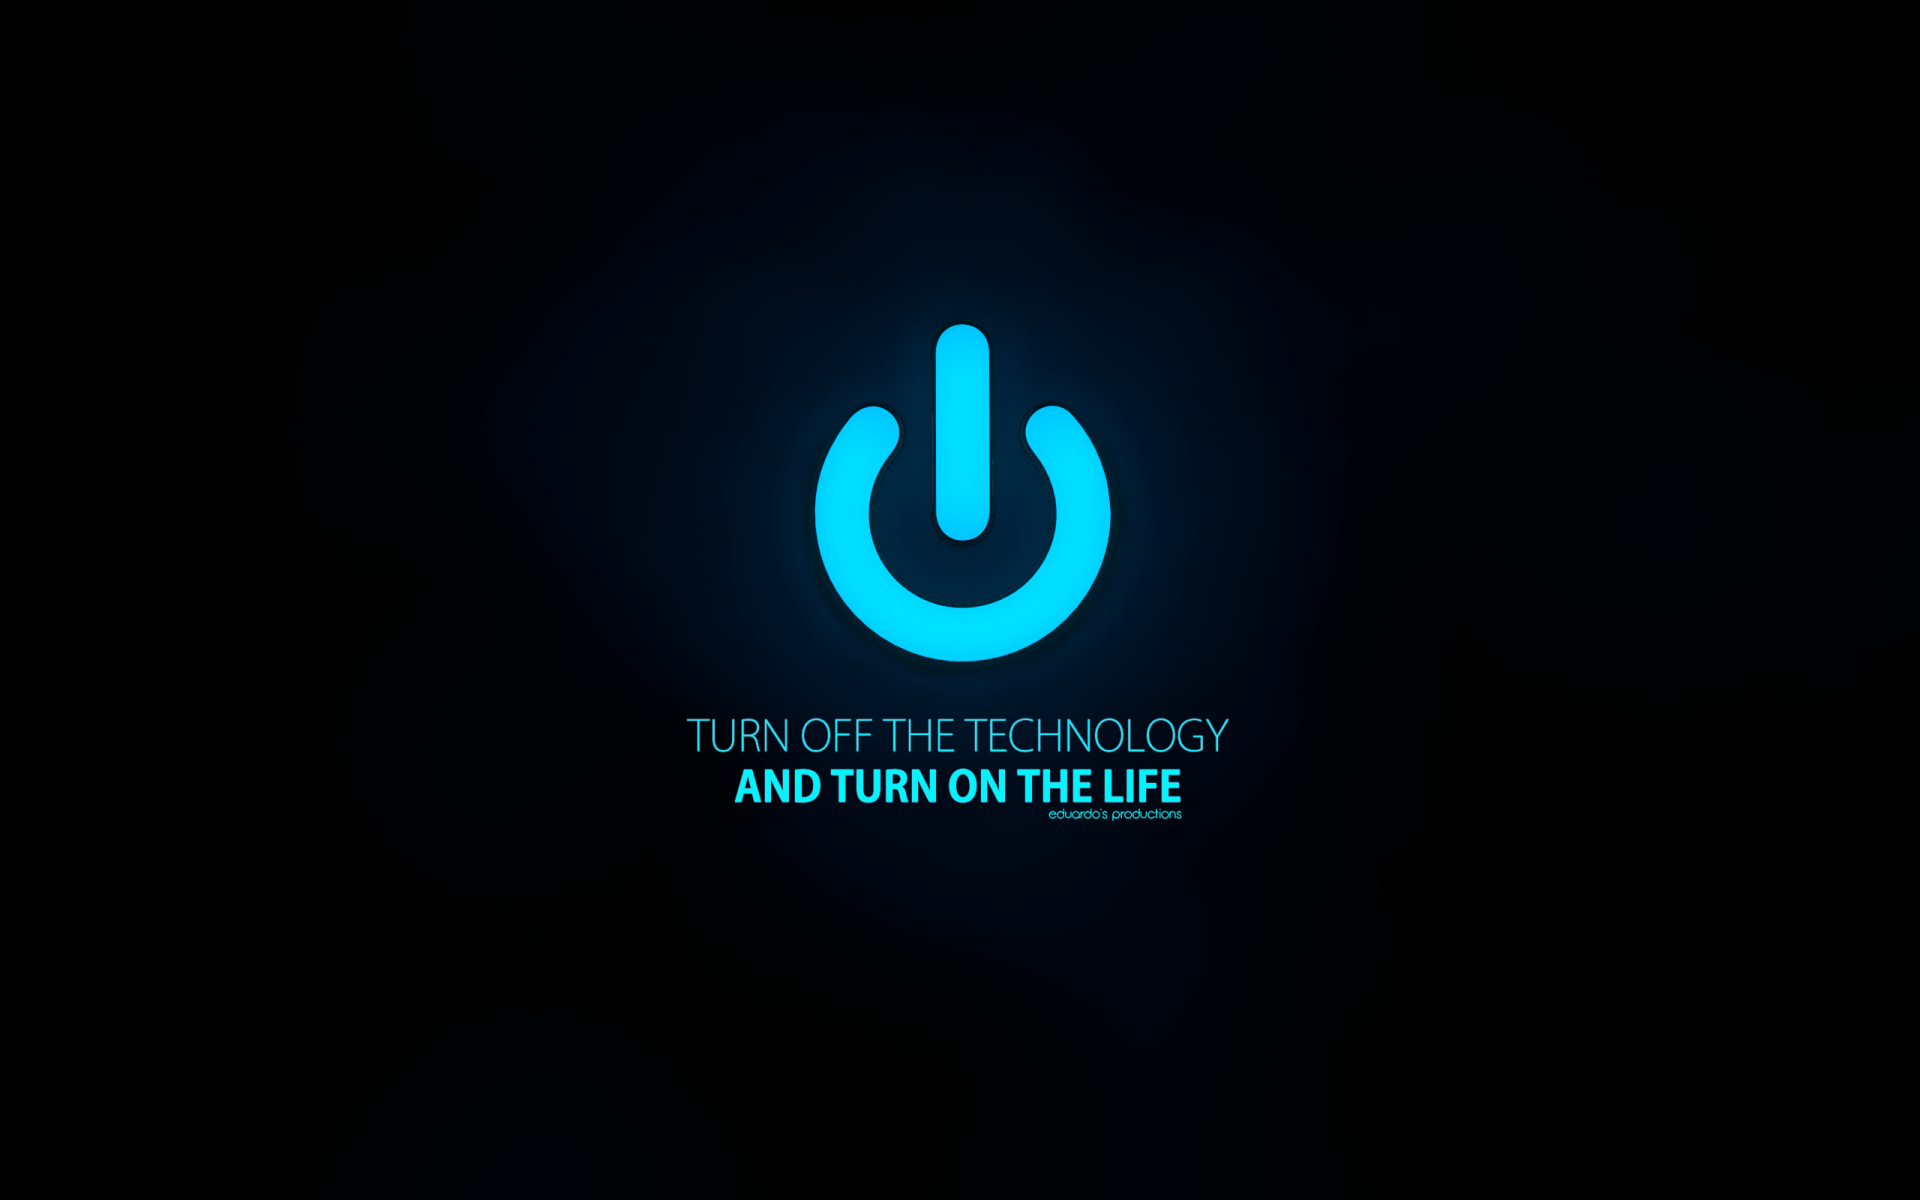 Funny Pictures Gallery Technology Wallpaper Hd Blue: Http://eduardosproductions.deviantart.com/art/turn-off-the